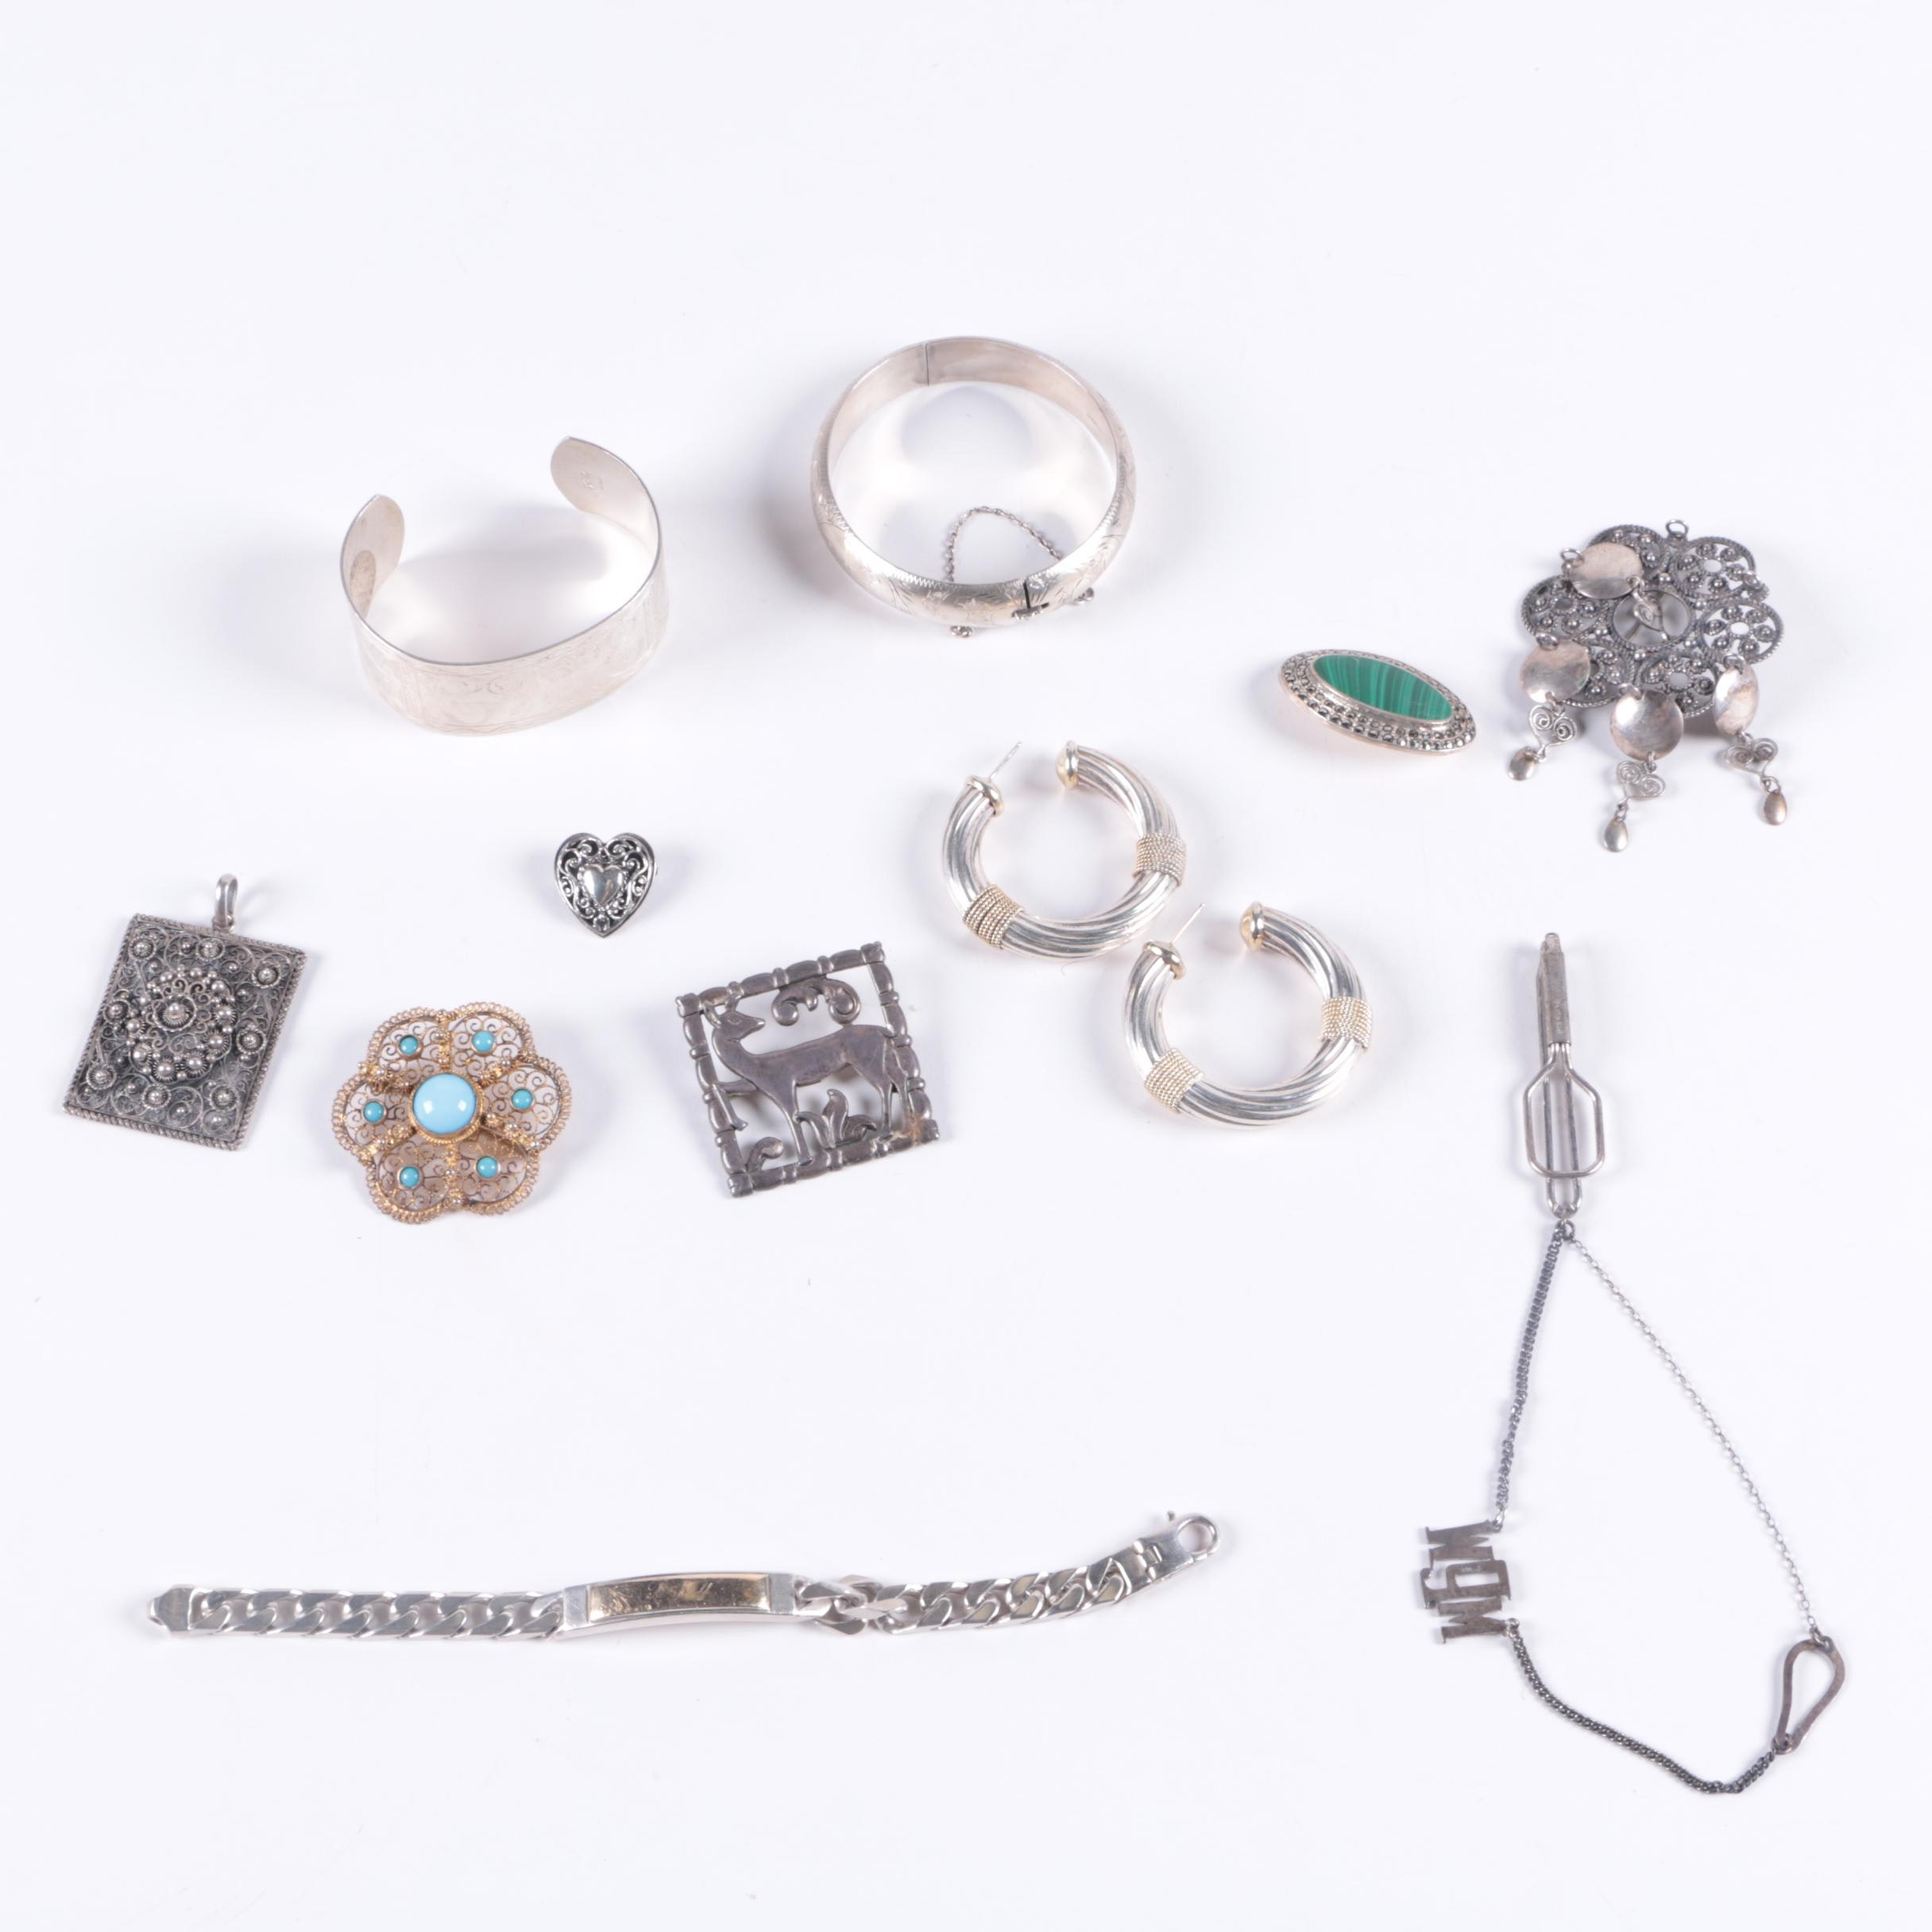 Selection of Sterling Silver Jewelry Including a Norwegian Brooch